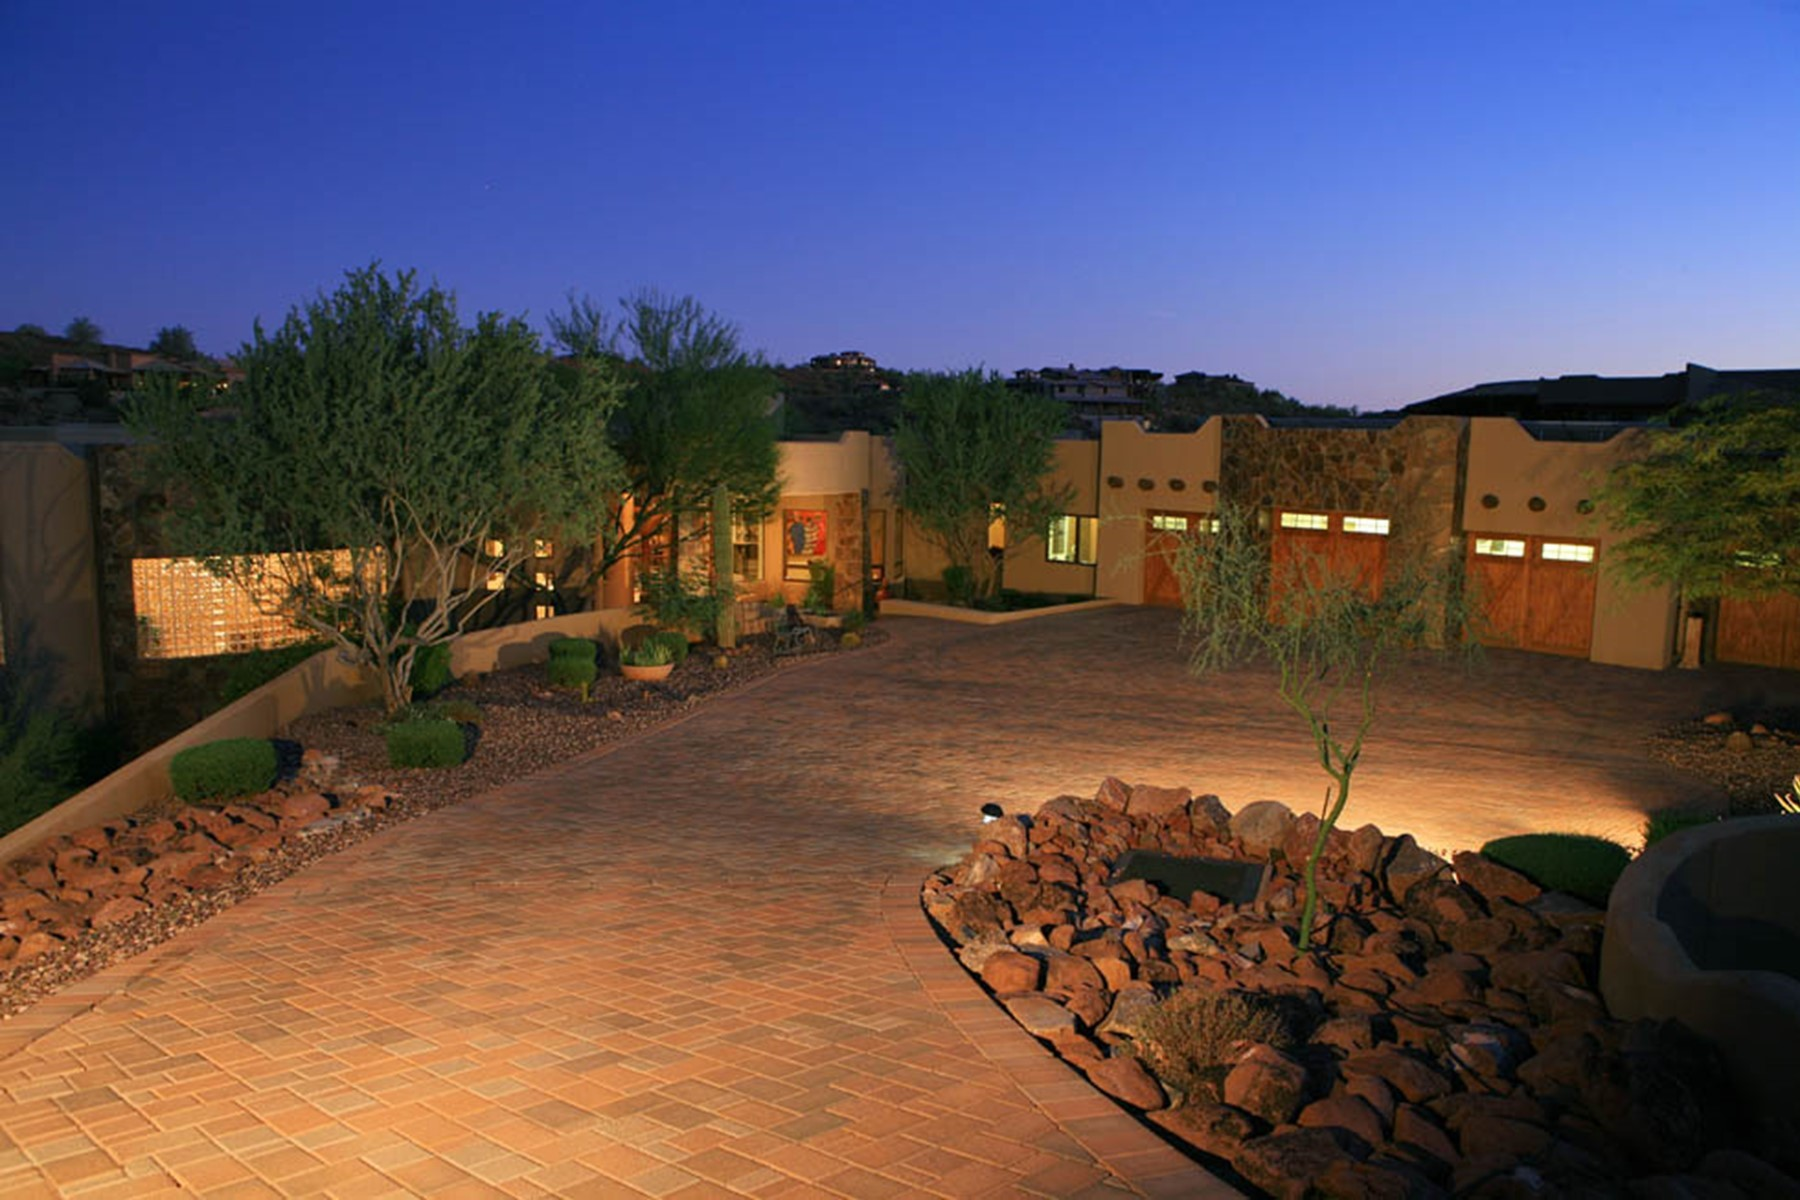 Single Family Homes for Active at FireRock Country Club 10021 N CANYON VIEW LN Fountain Hills, Arizona 85268 United States